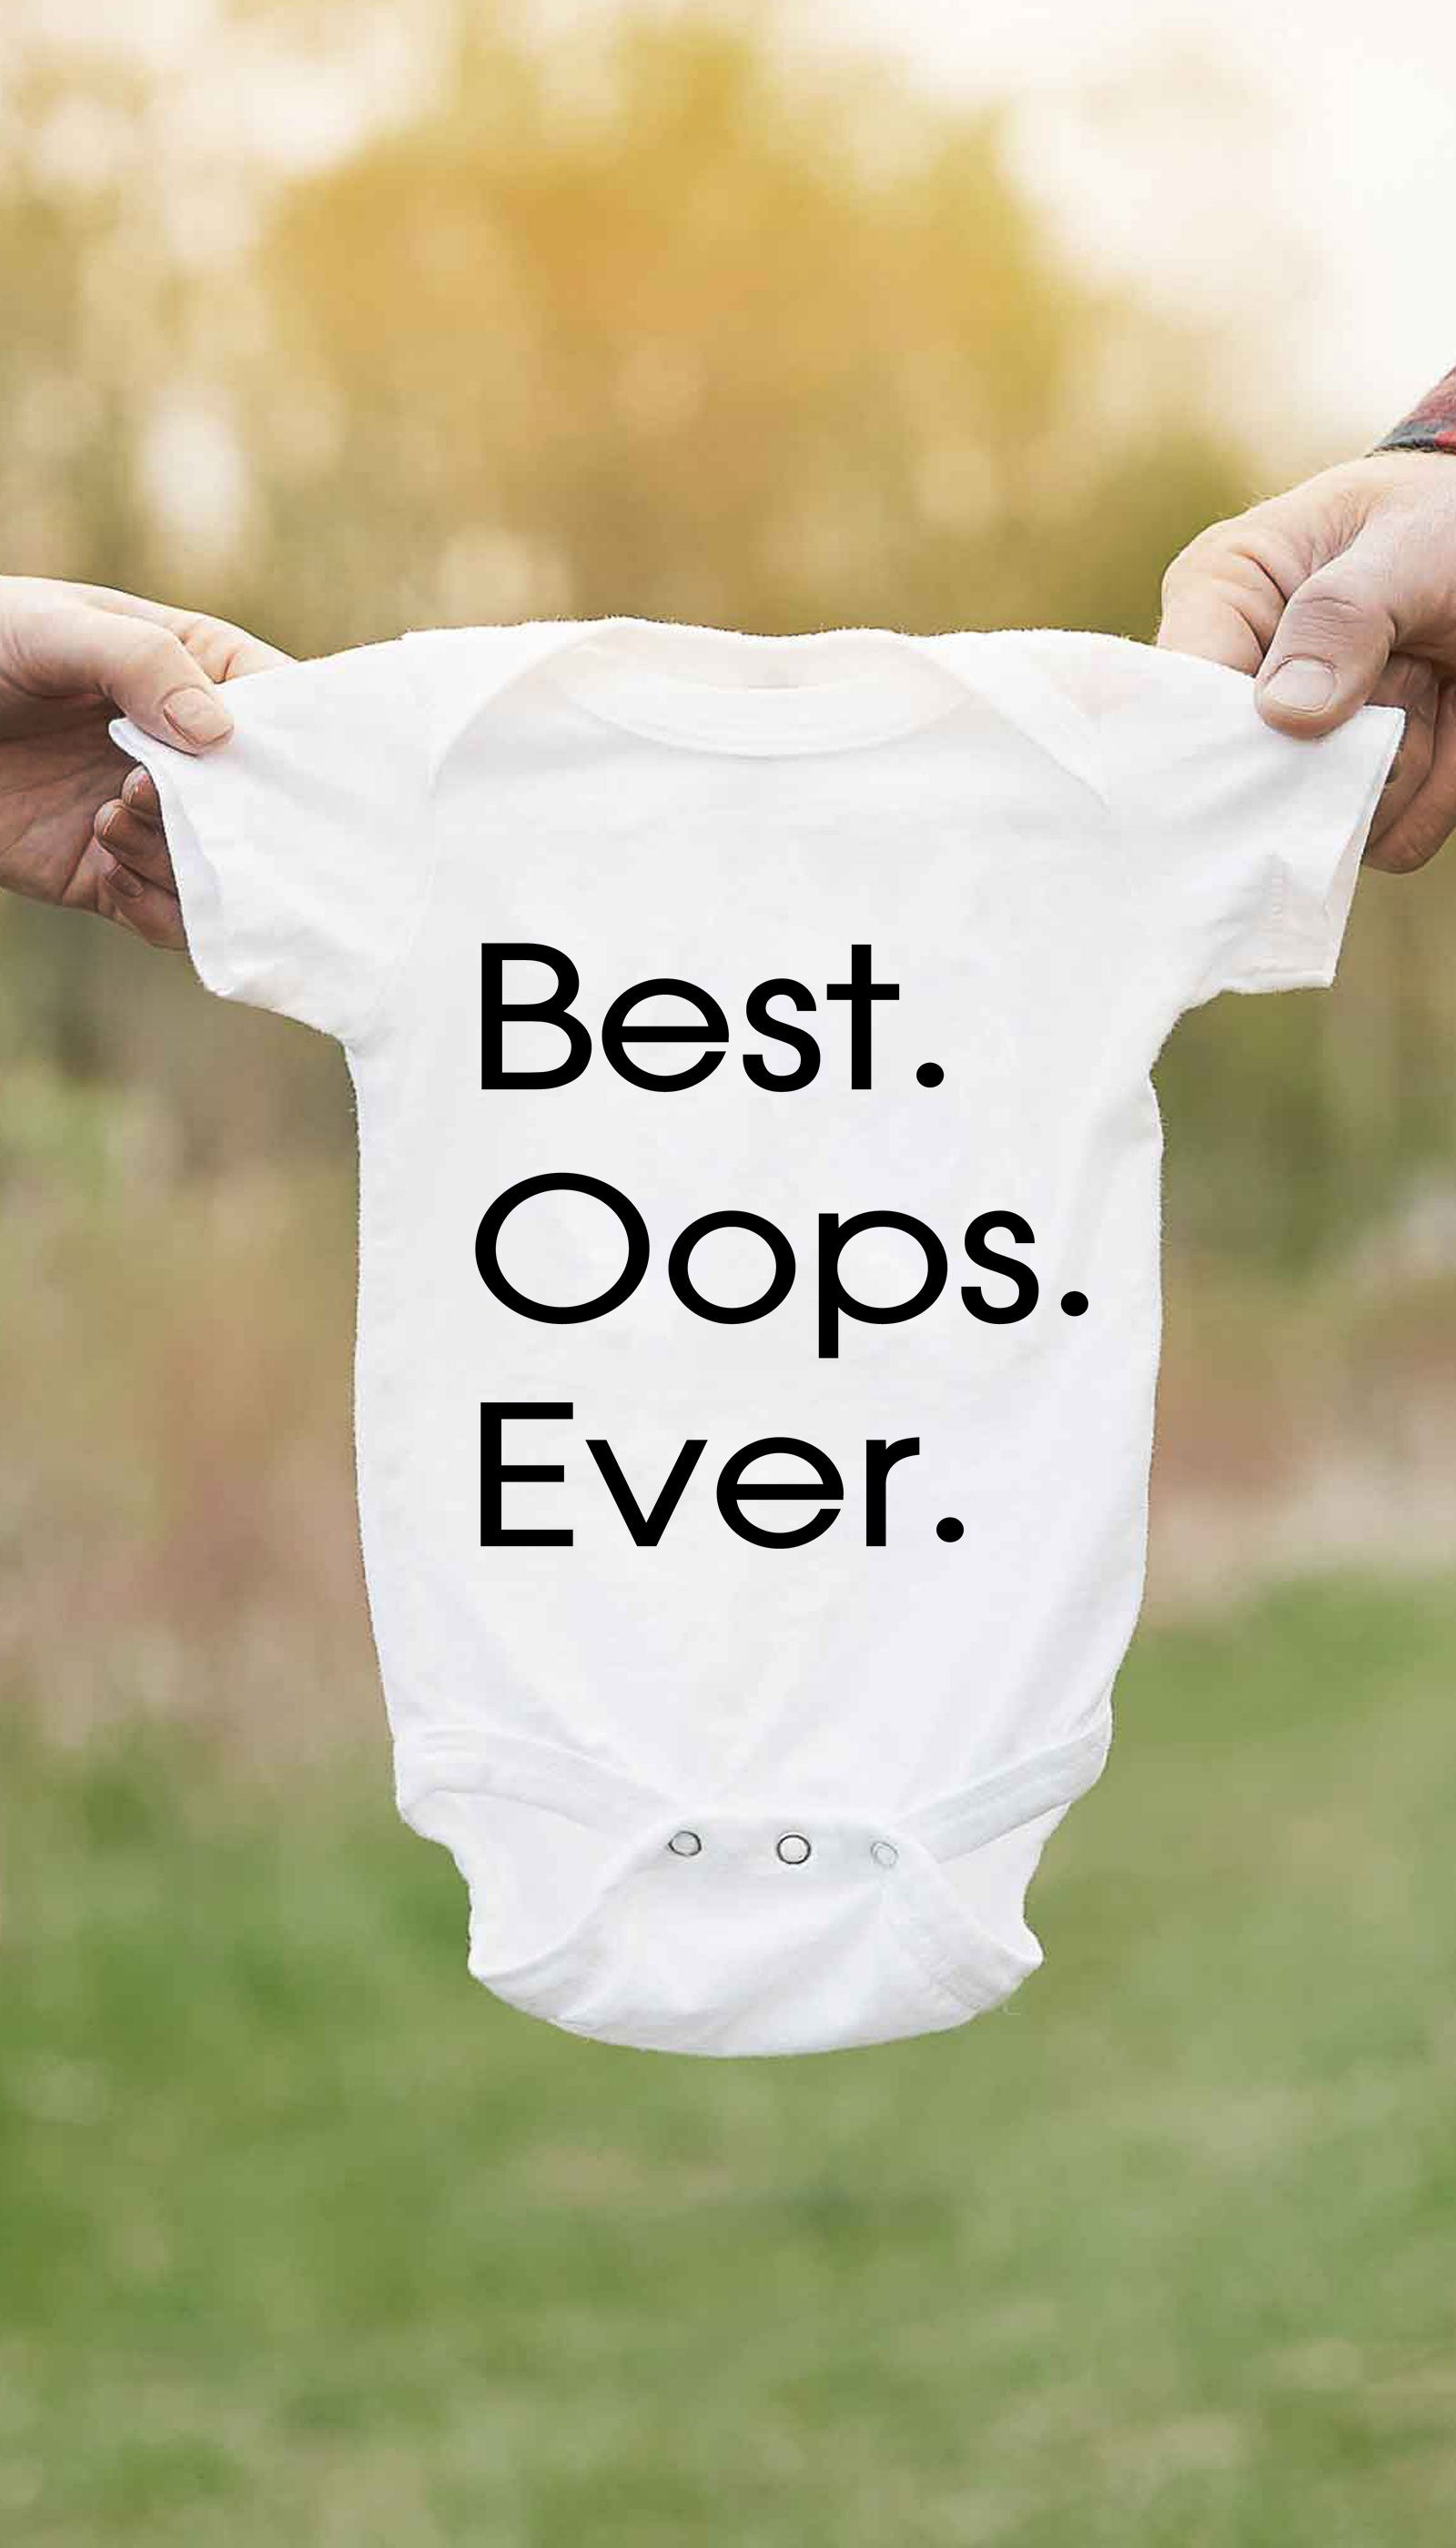 Best Oops Ever Funny Baby Infant Onesie Sarcastic Me